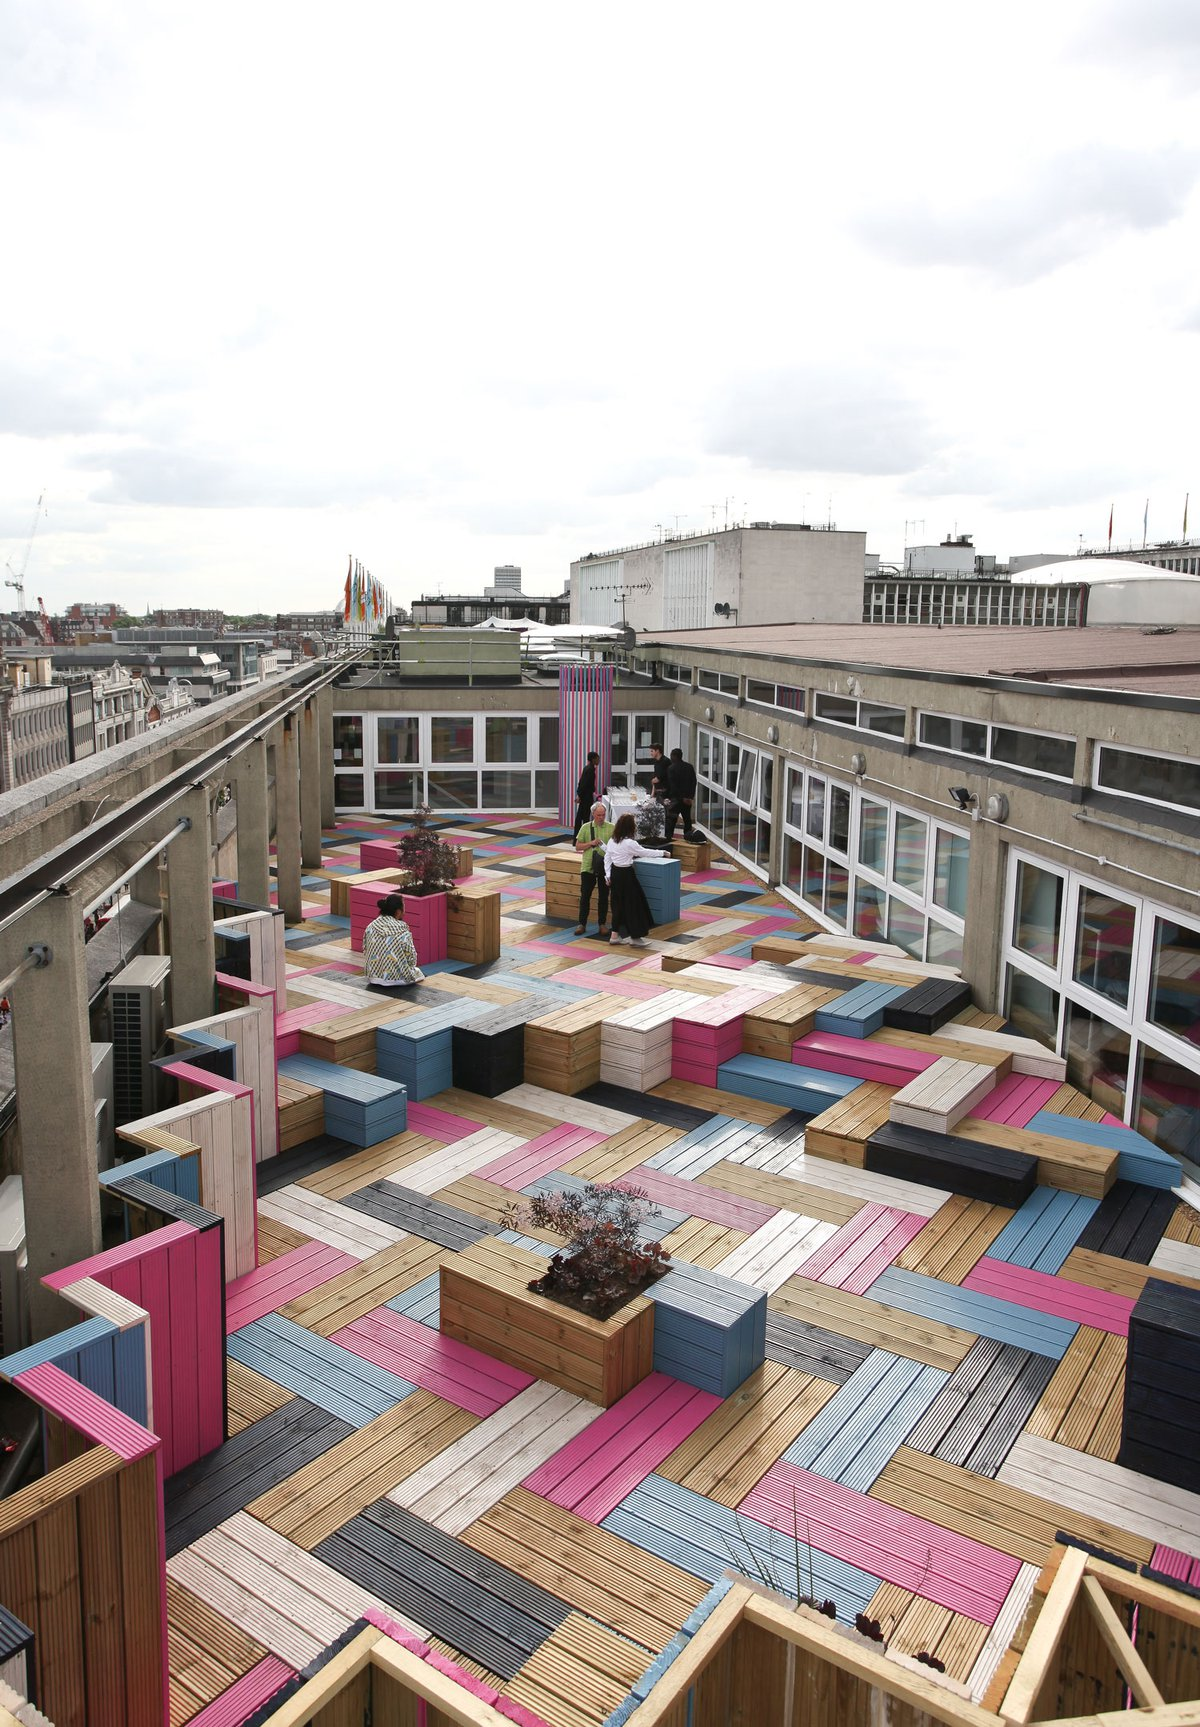 London College of Fashion Roof Garden